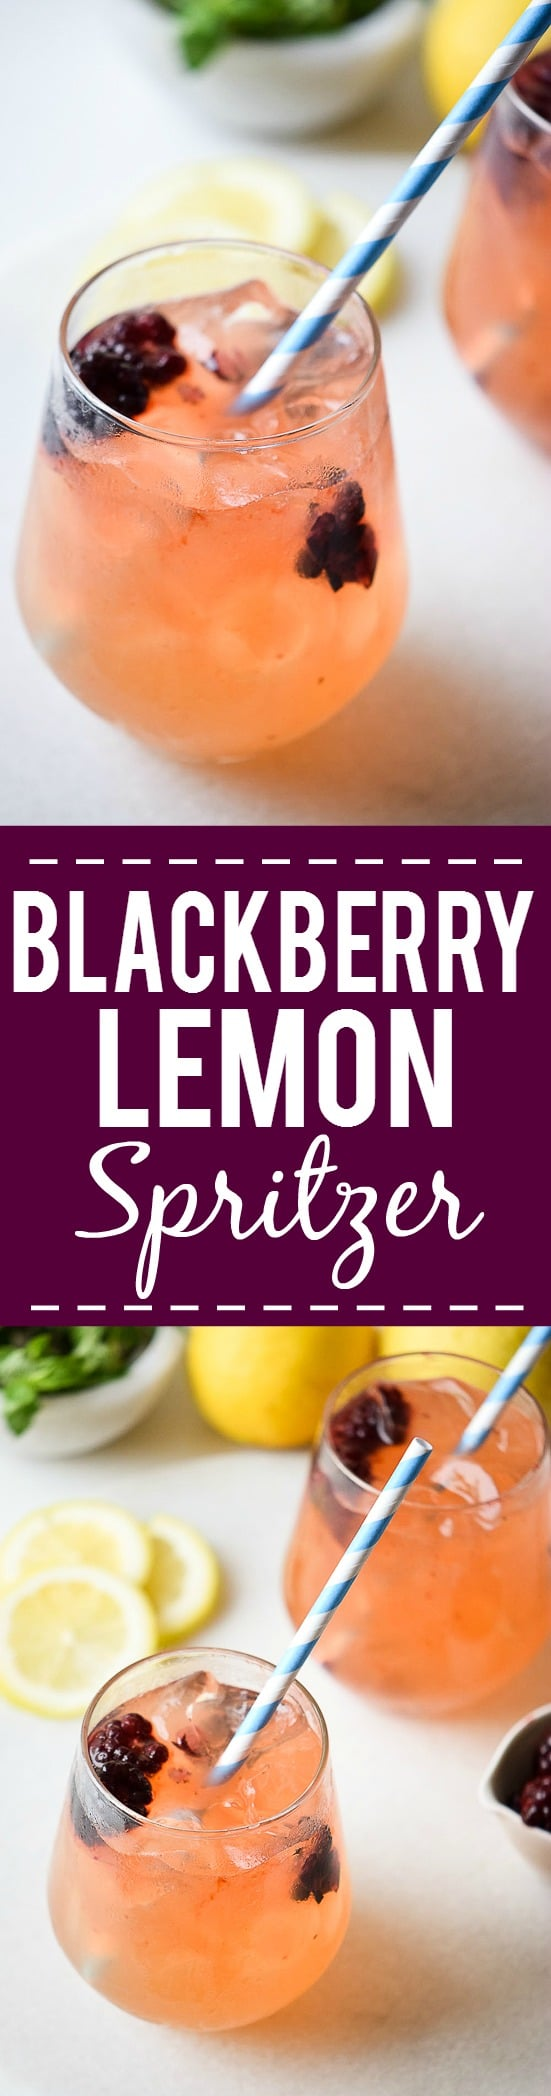 Blackberry Lemon Spritzer Recipe - Fresh, a little sweet, and a lot of delicious, this tangy Blackberry Lemon Spritzer is perfect for all occasions and can be made into a mocktail or a cocktail.